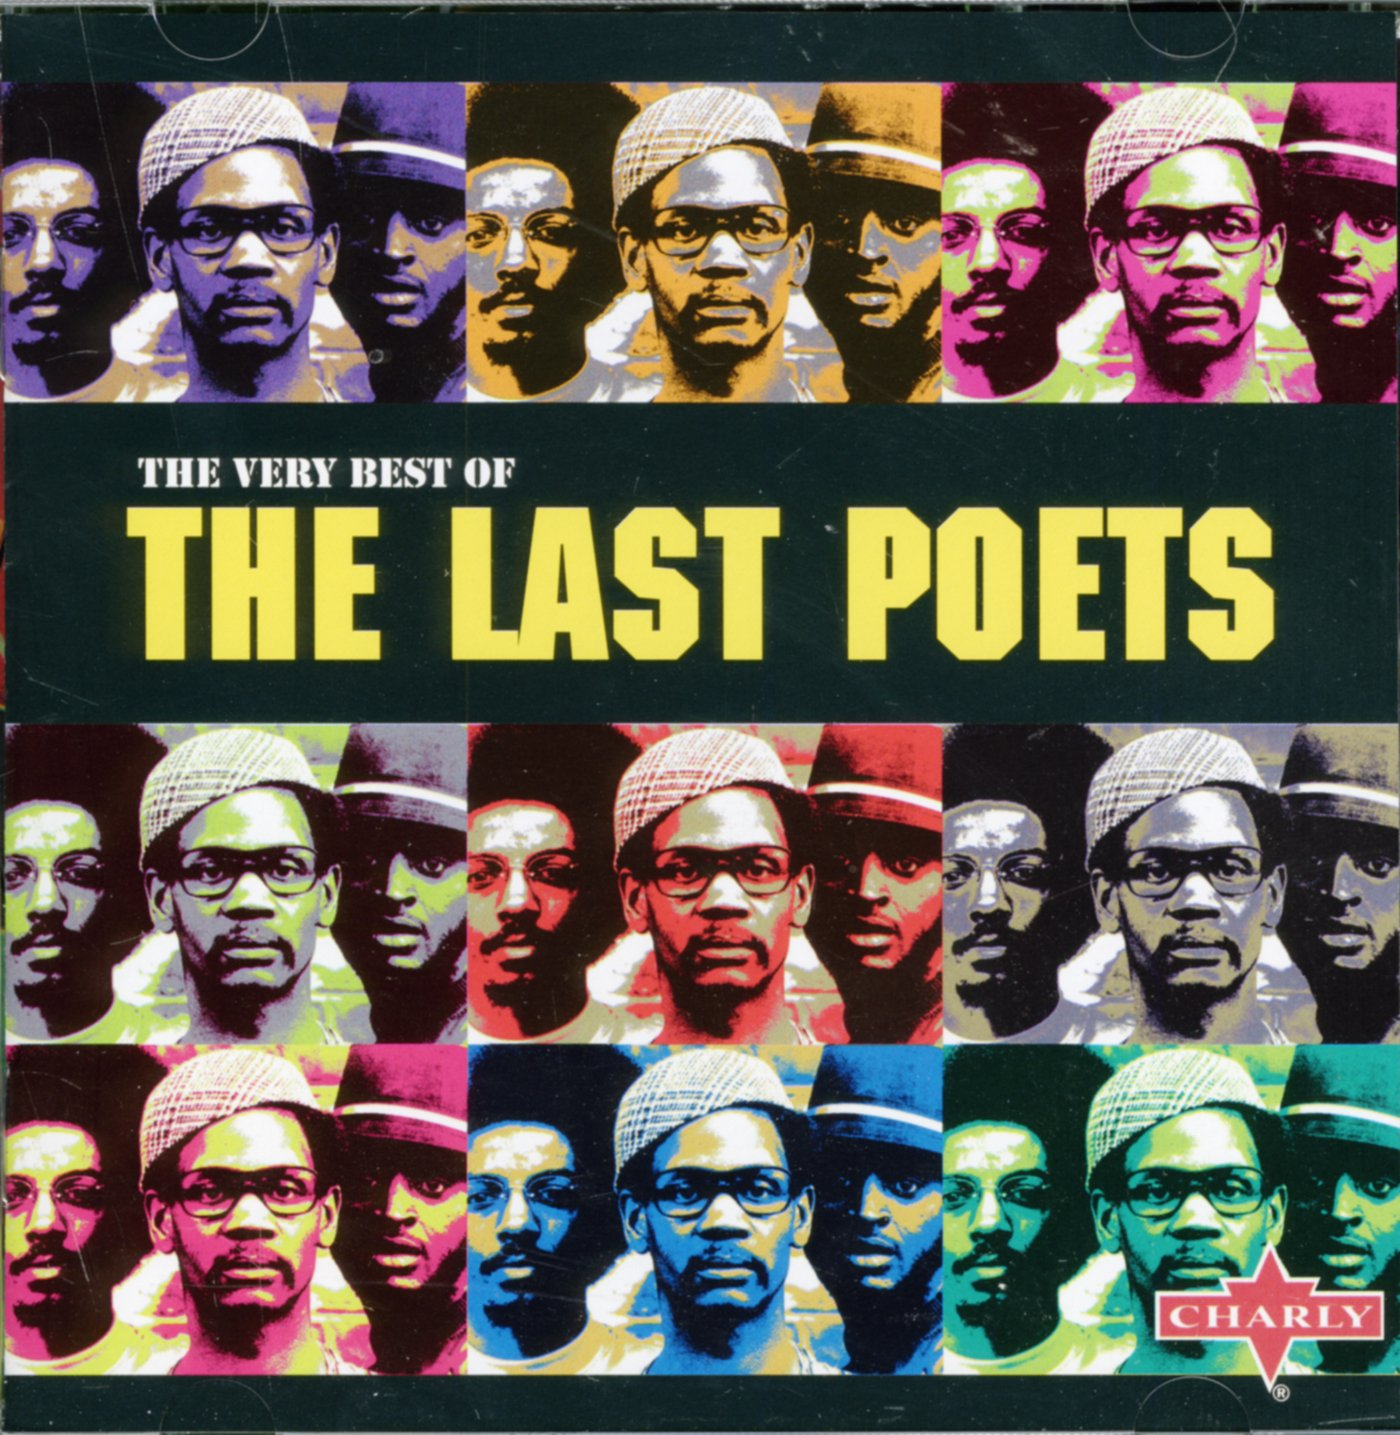 The Very Best Of The Last Poets by SNAPPER MUSIC LTD.